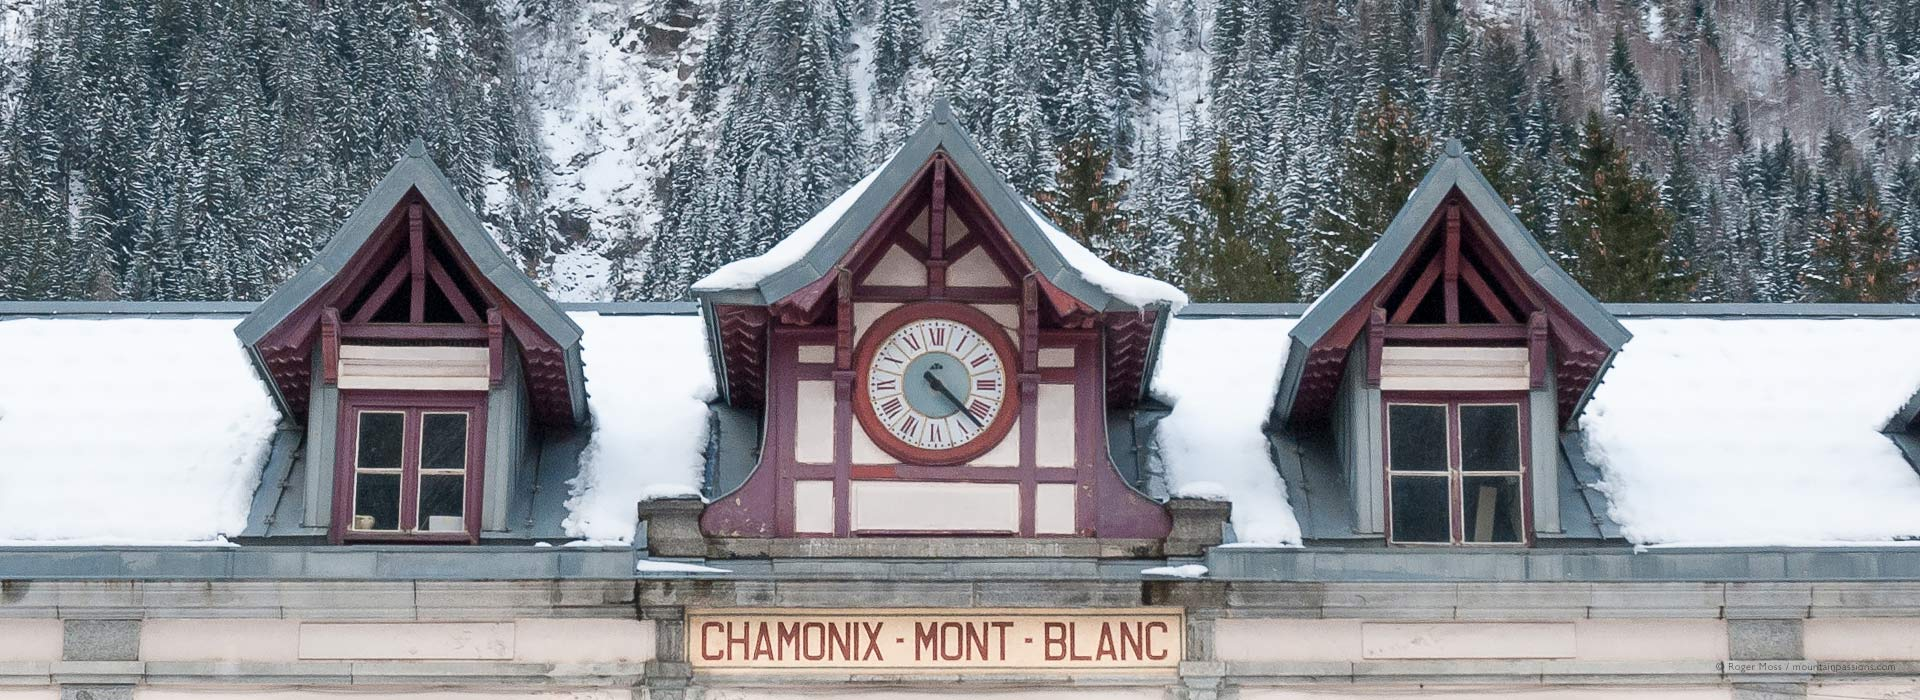 Snow-covered roof of Chamonix Mont-Blanc Gare SNCF, French Alps.